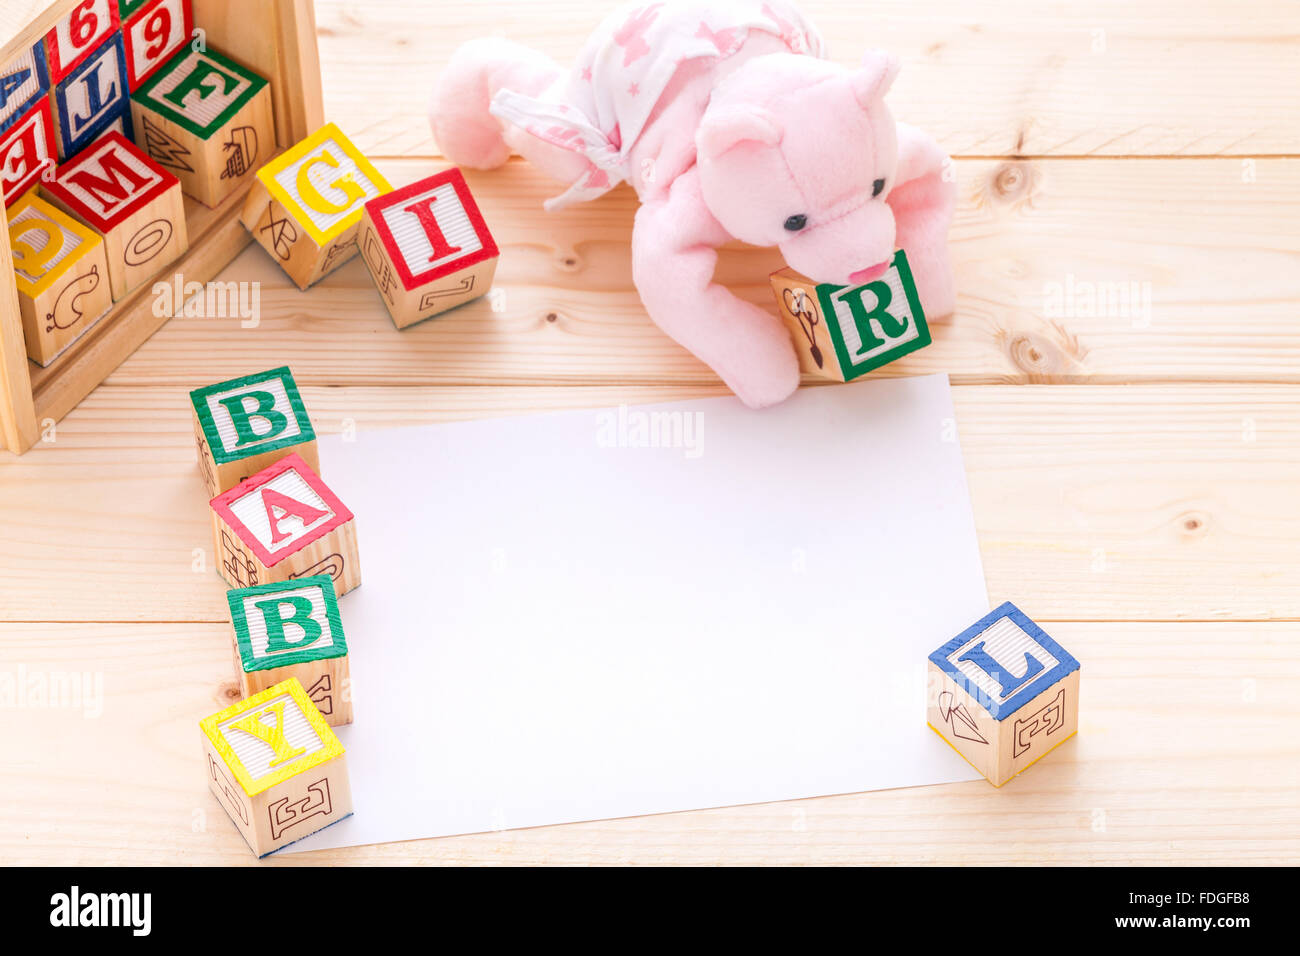 baby announcement invitation a pink toy bear spelling the words baby boy with wooden toy blocks on pine wood floor background